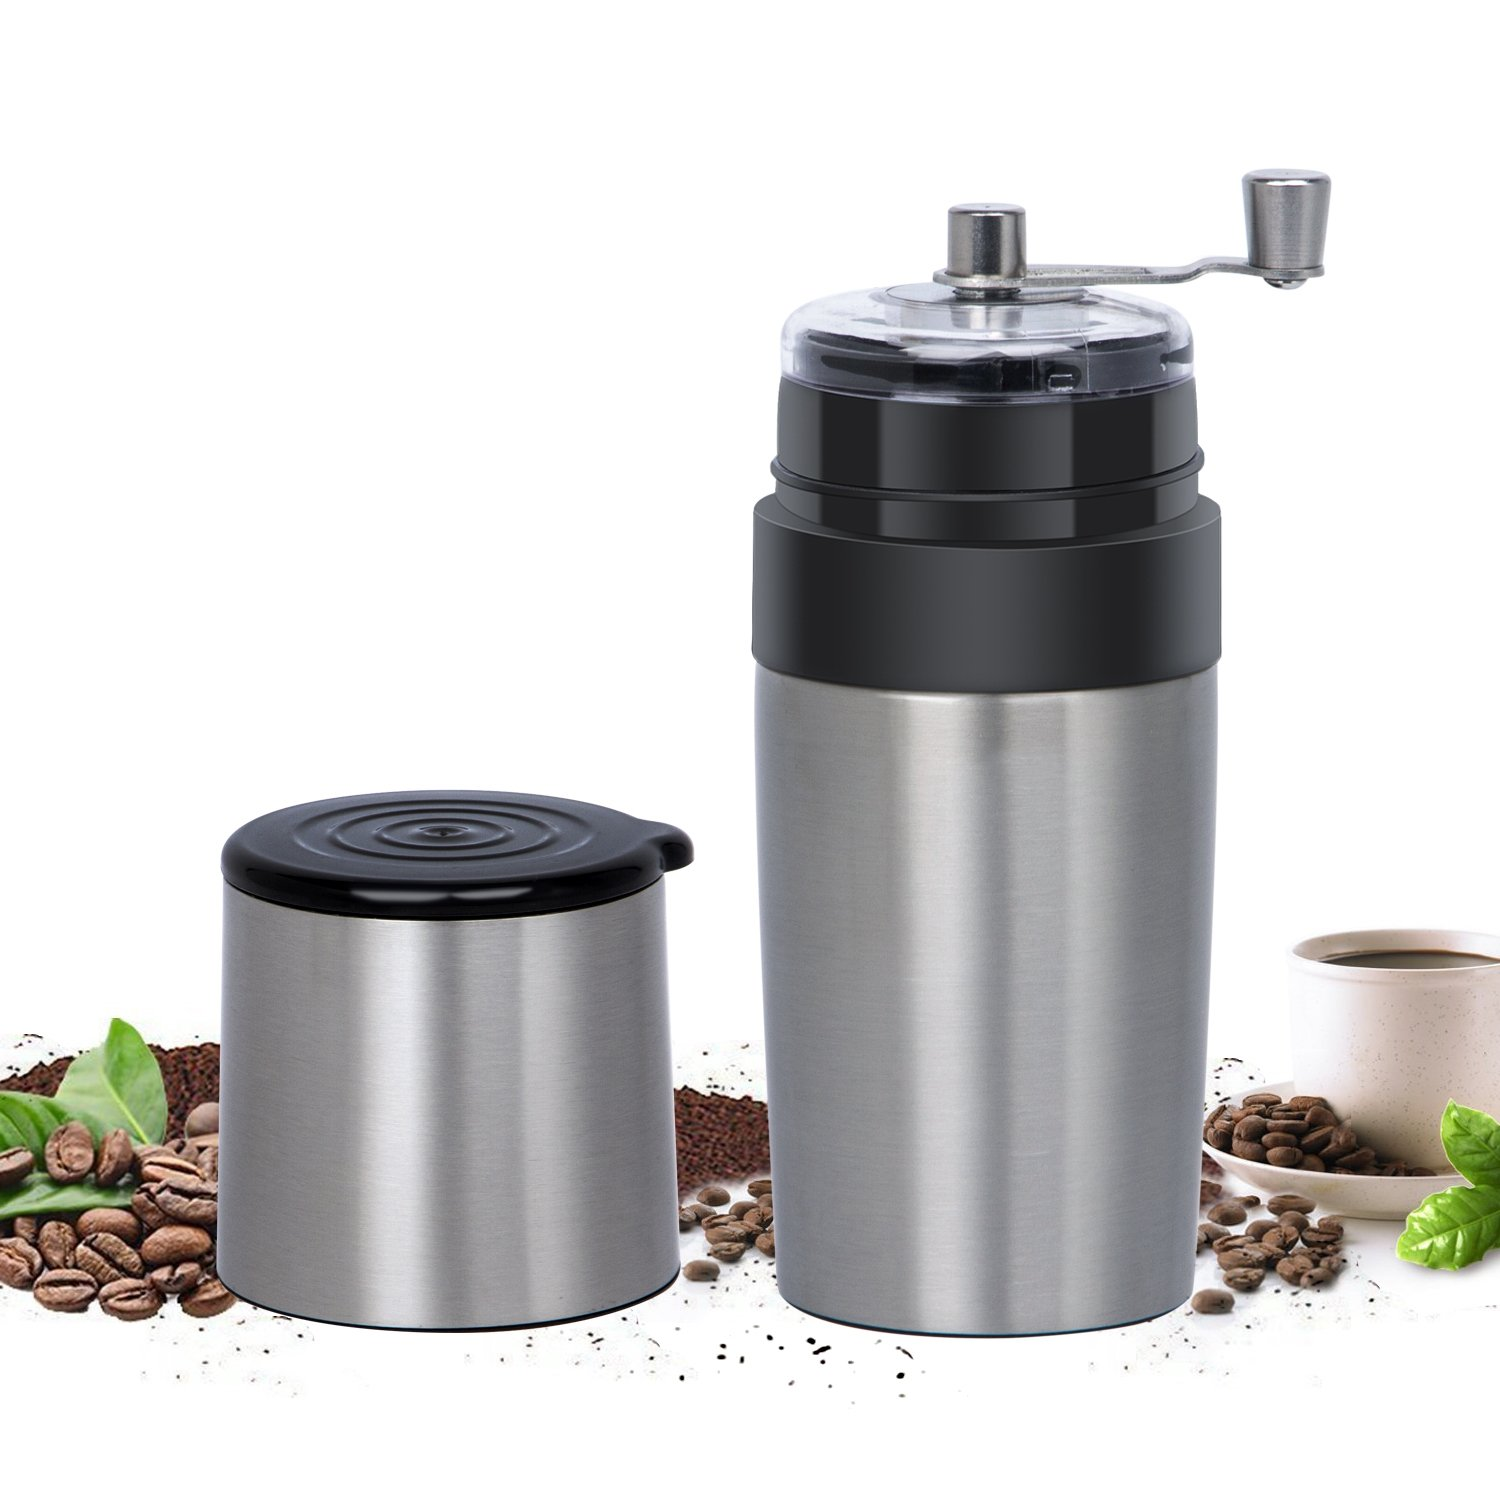 Manual Coffee Grinder, Kimfly Adjustable Coffee Bean Mill With Stainless Steel Body & Easy Hand Crank, Portable Home Kitchen Travel Coffee Bean Grinder/Coffee Mill